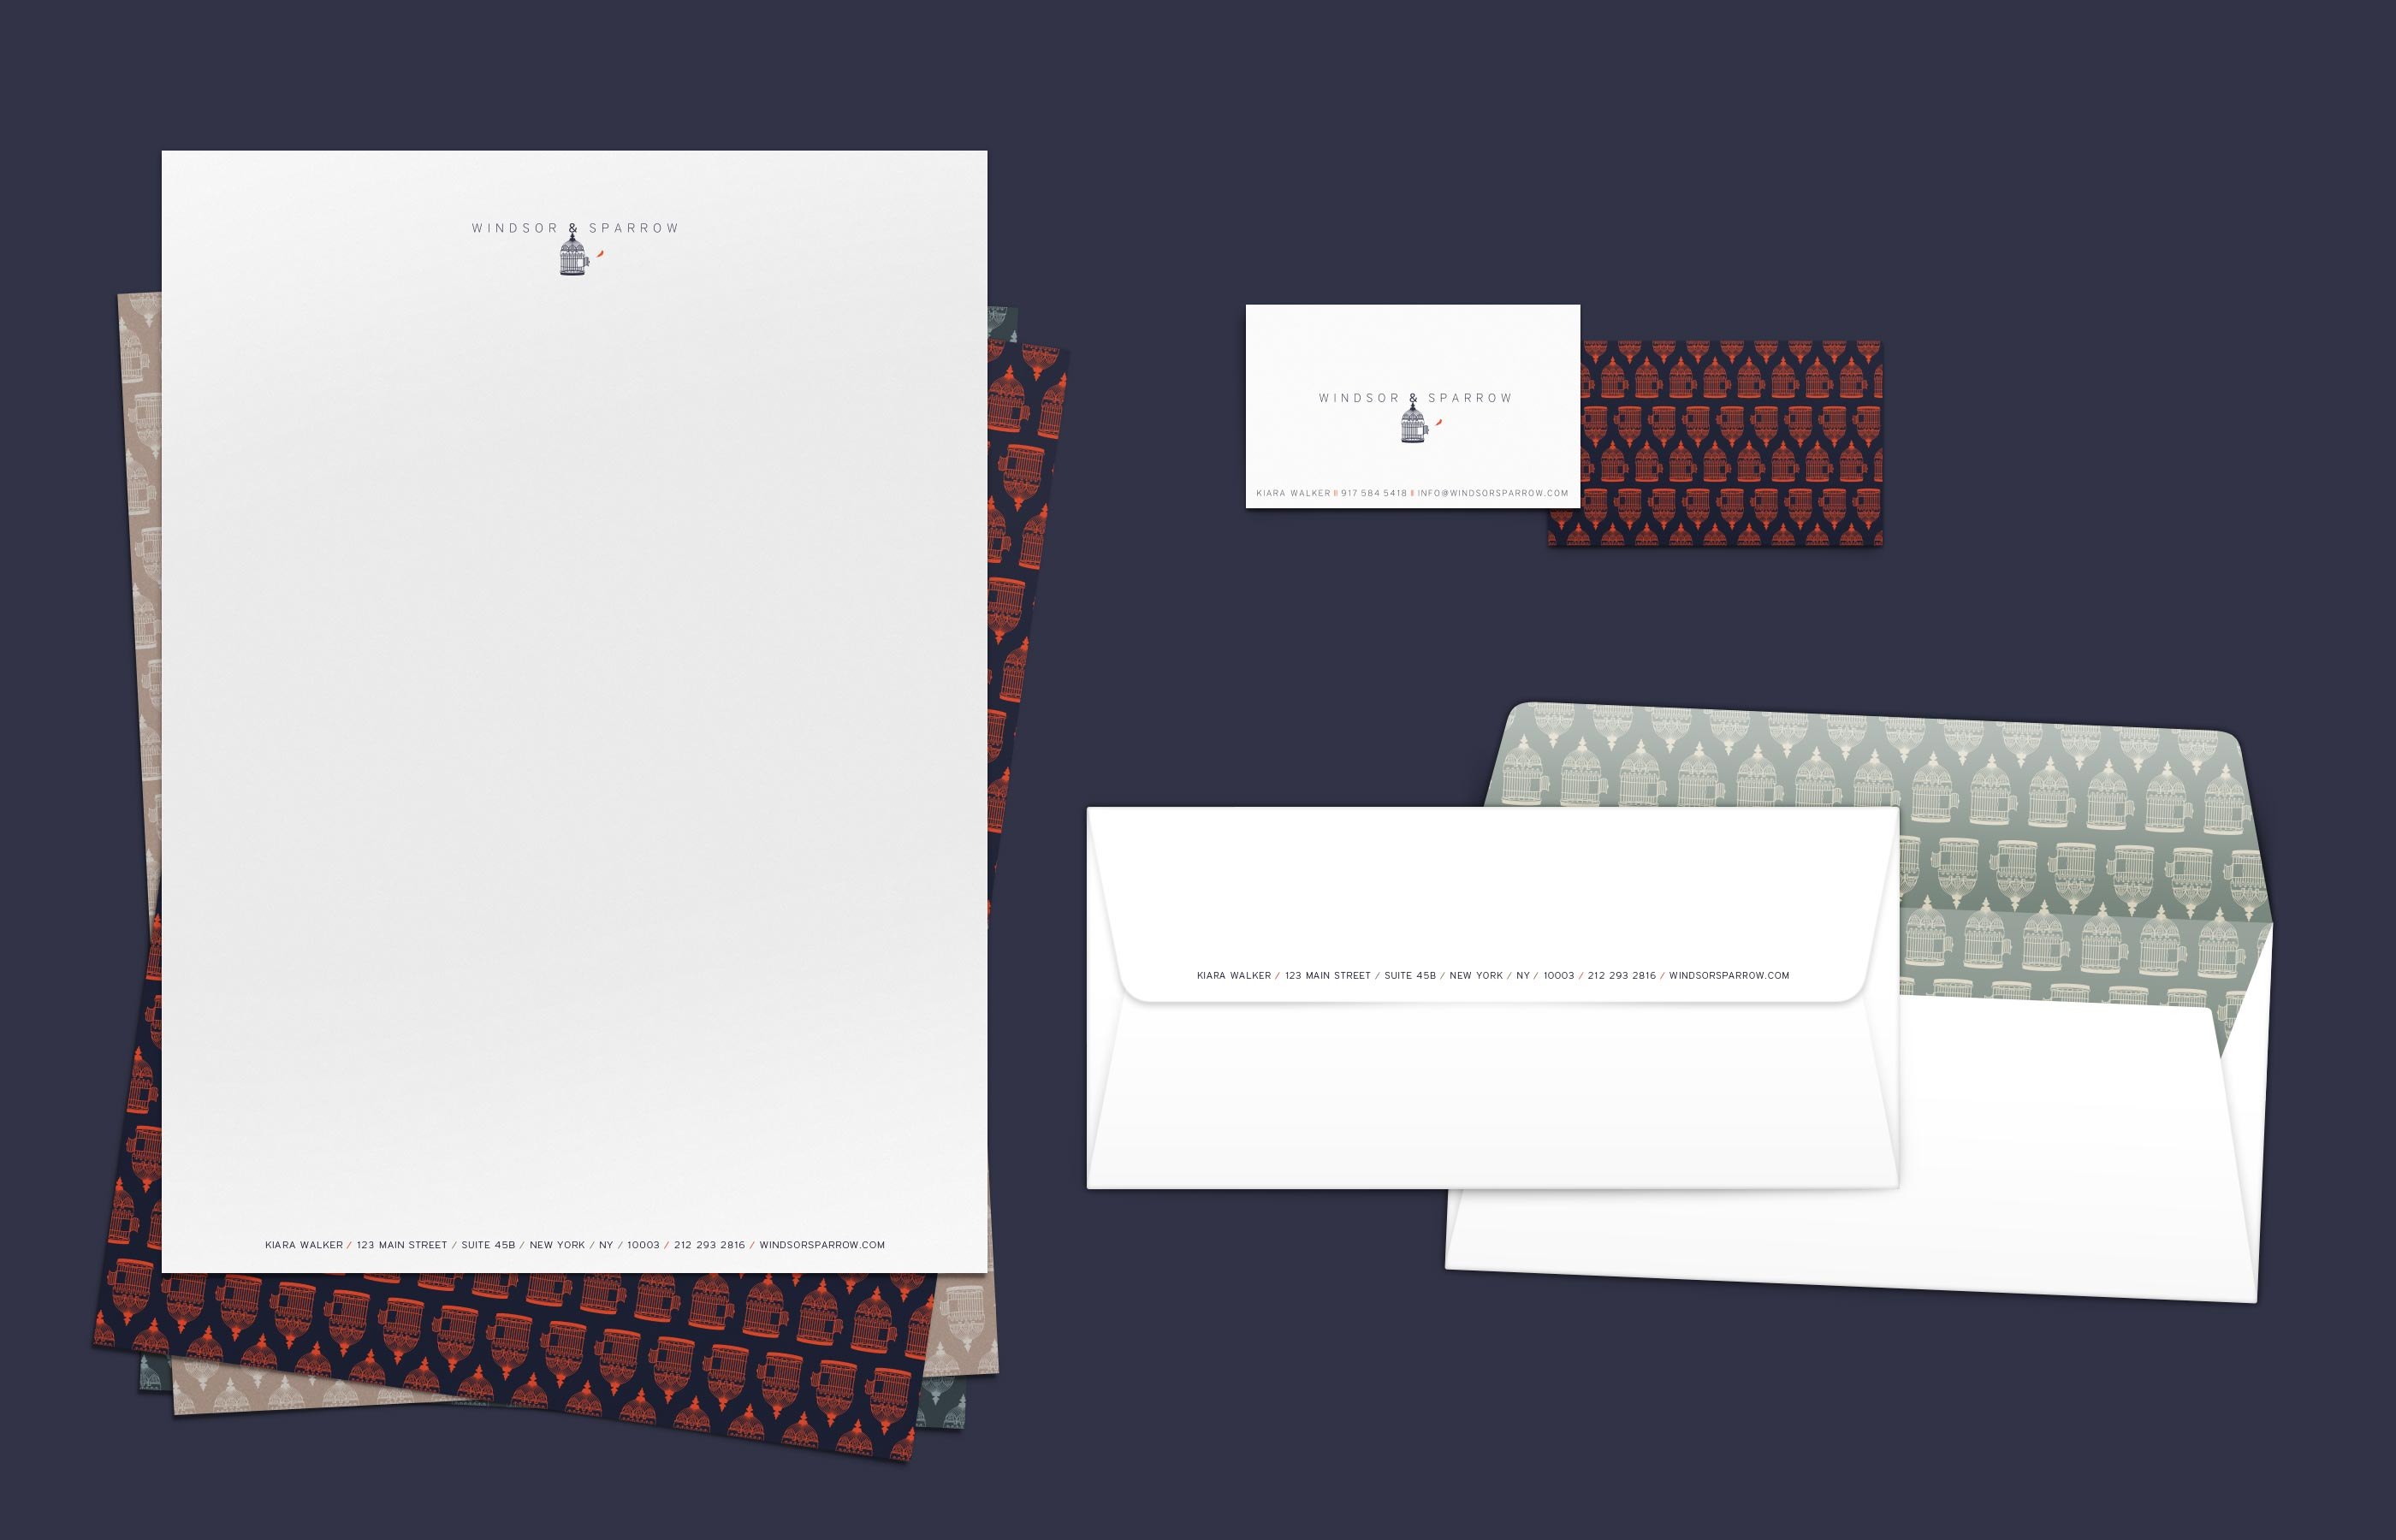 meng-he-windsor-and-sparrow-stationery